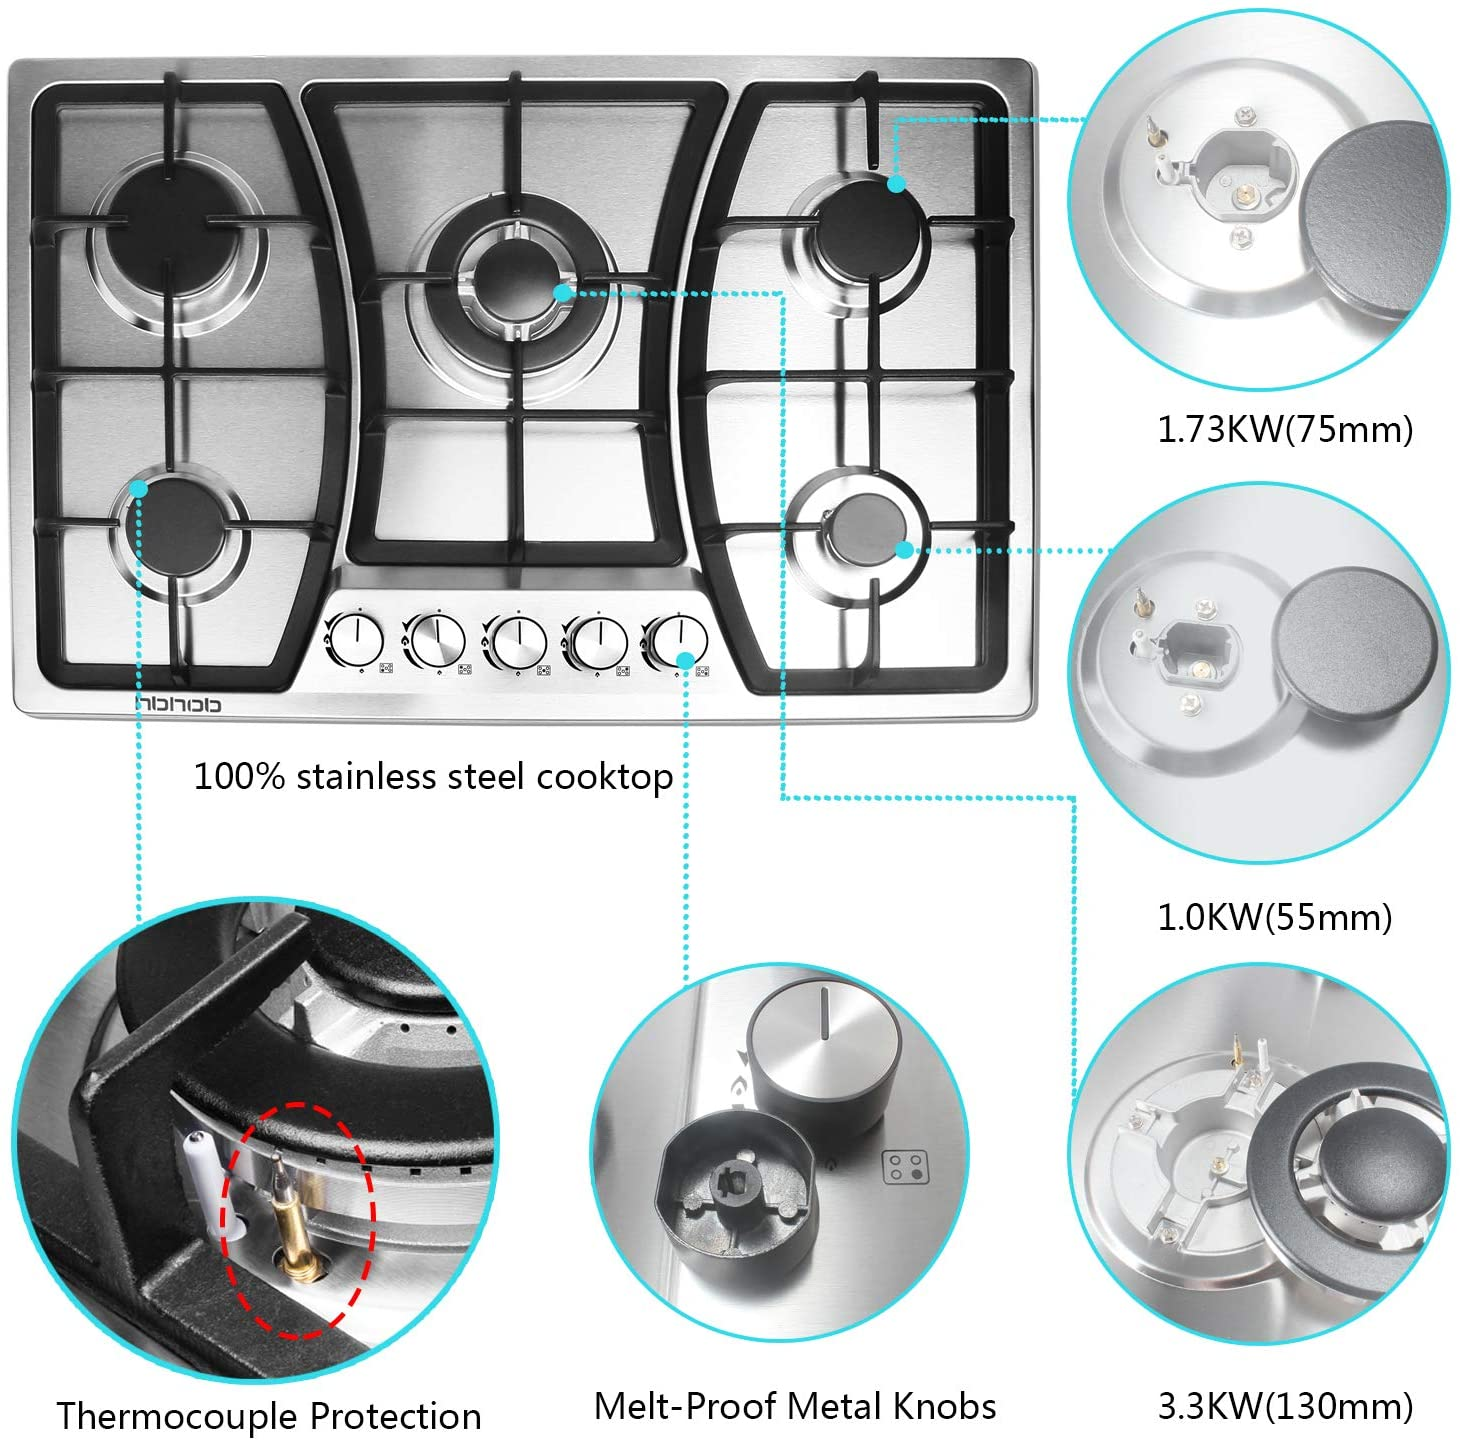 Country Cooker LPG Gas Stove 1 Ring Burner Strong Metal Frame 30 x 30 cm